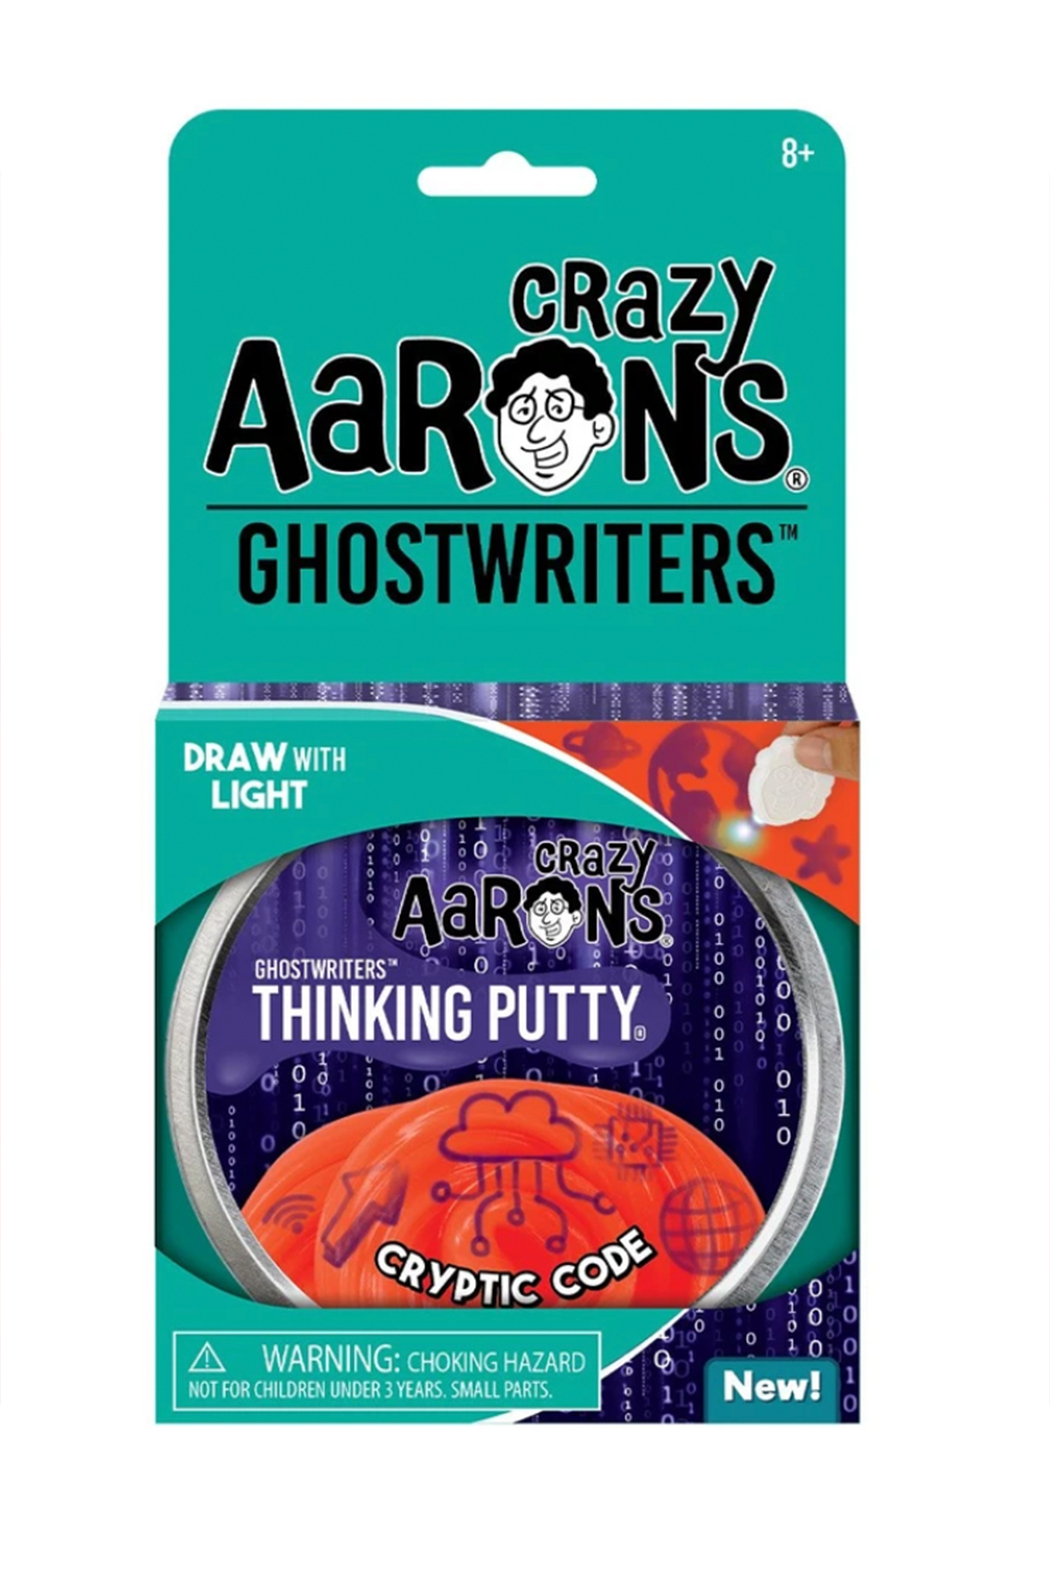 Crazy Aaron's  Ghostwriters Putty: Cryptic Code - Main Image